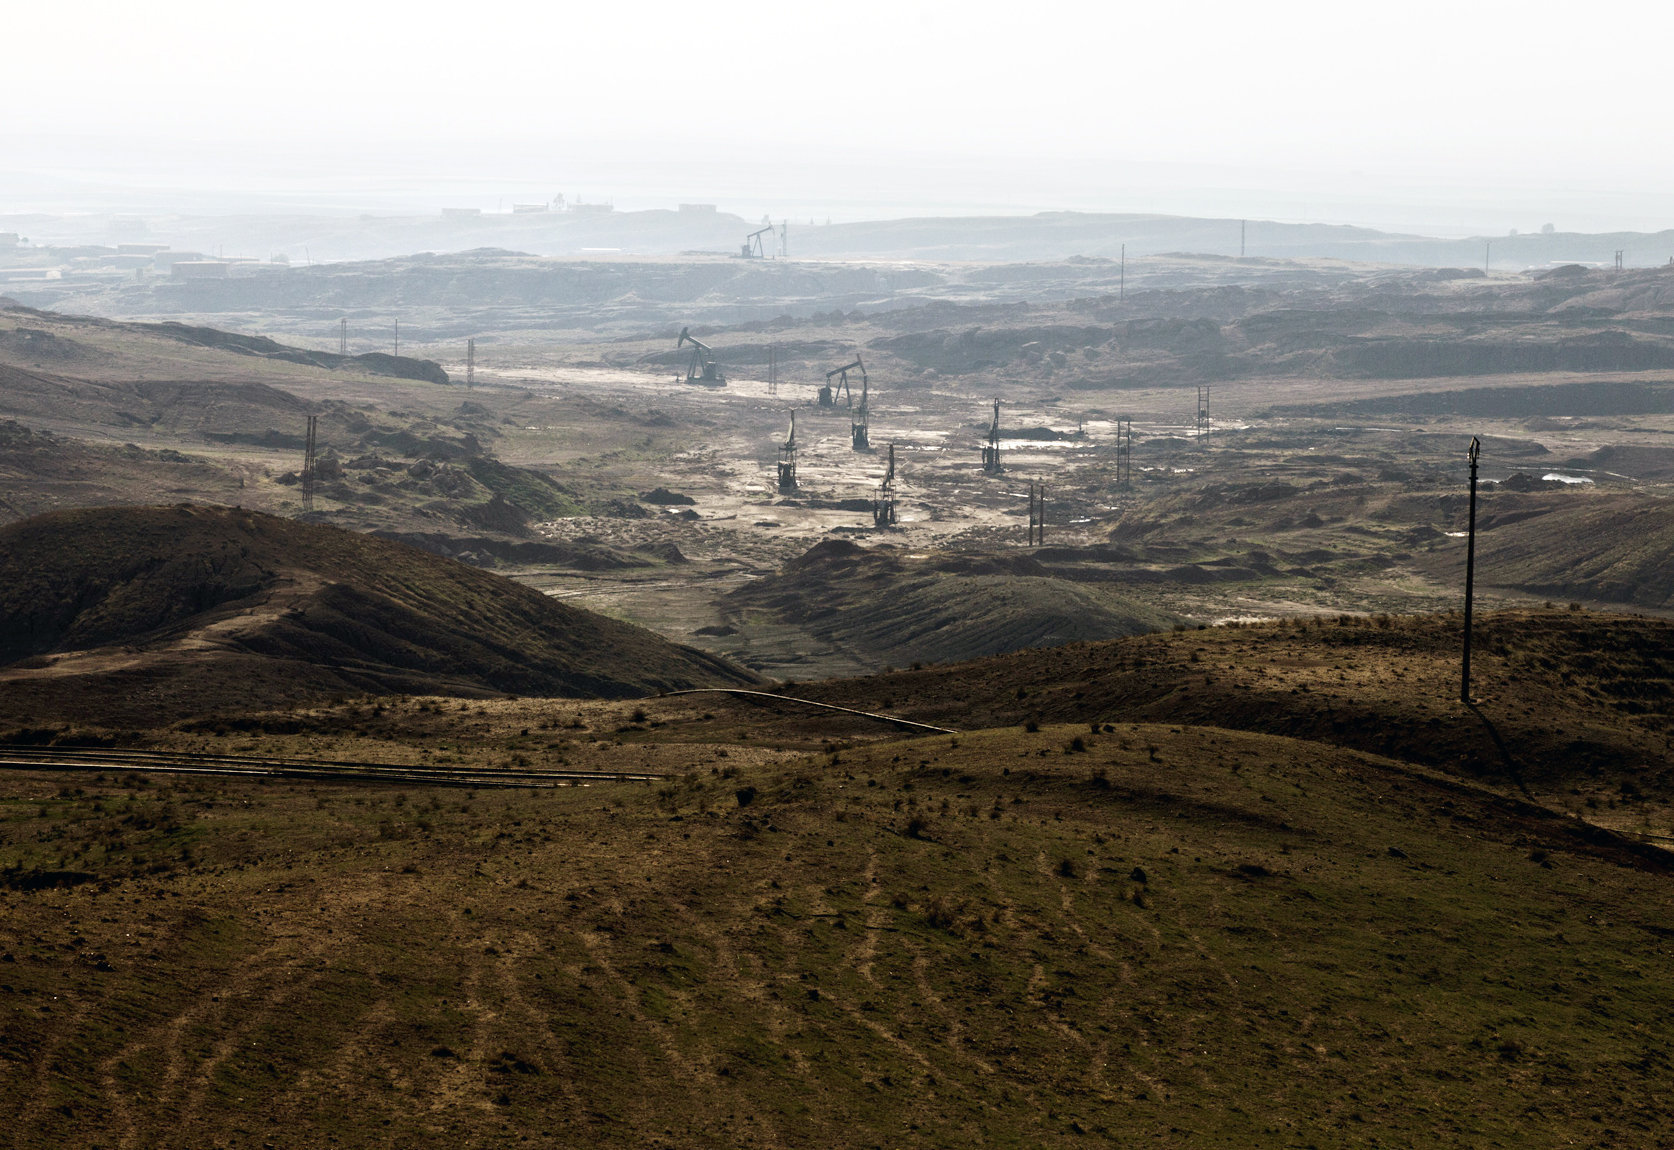 A picture taken on November 25, 2013 shows oil rigs in the Kurdish town of Deriq (al-Malikiyah in Arabic), in the northeastern Hasakeh governorate on the border with Turkey and Iraq